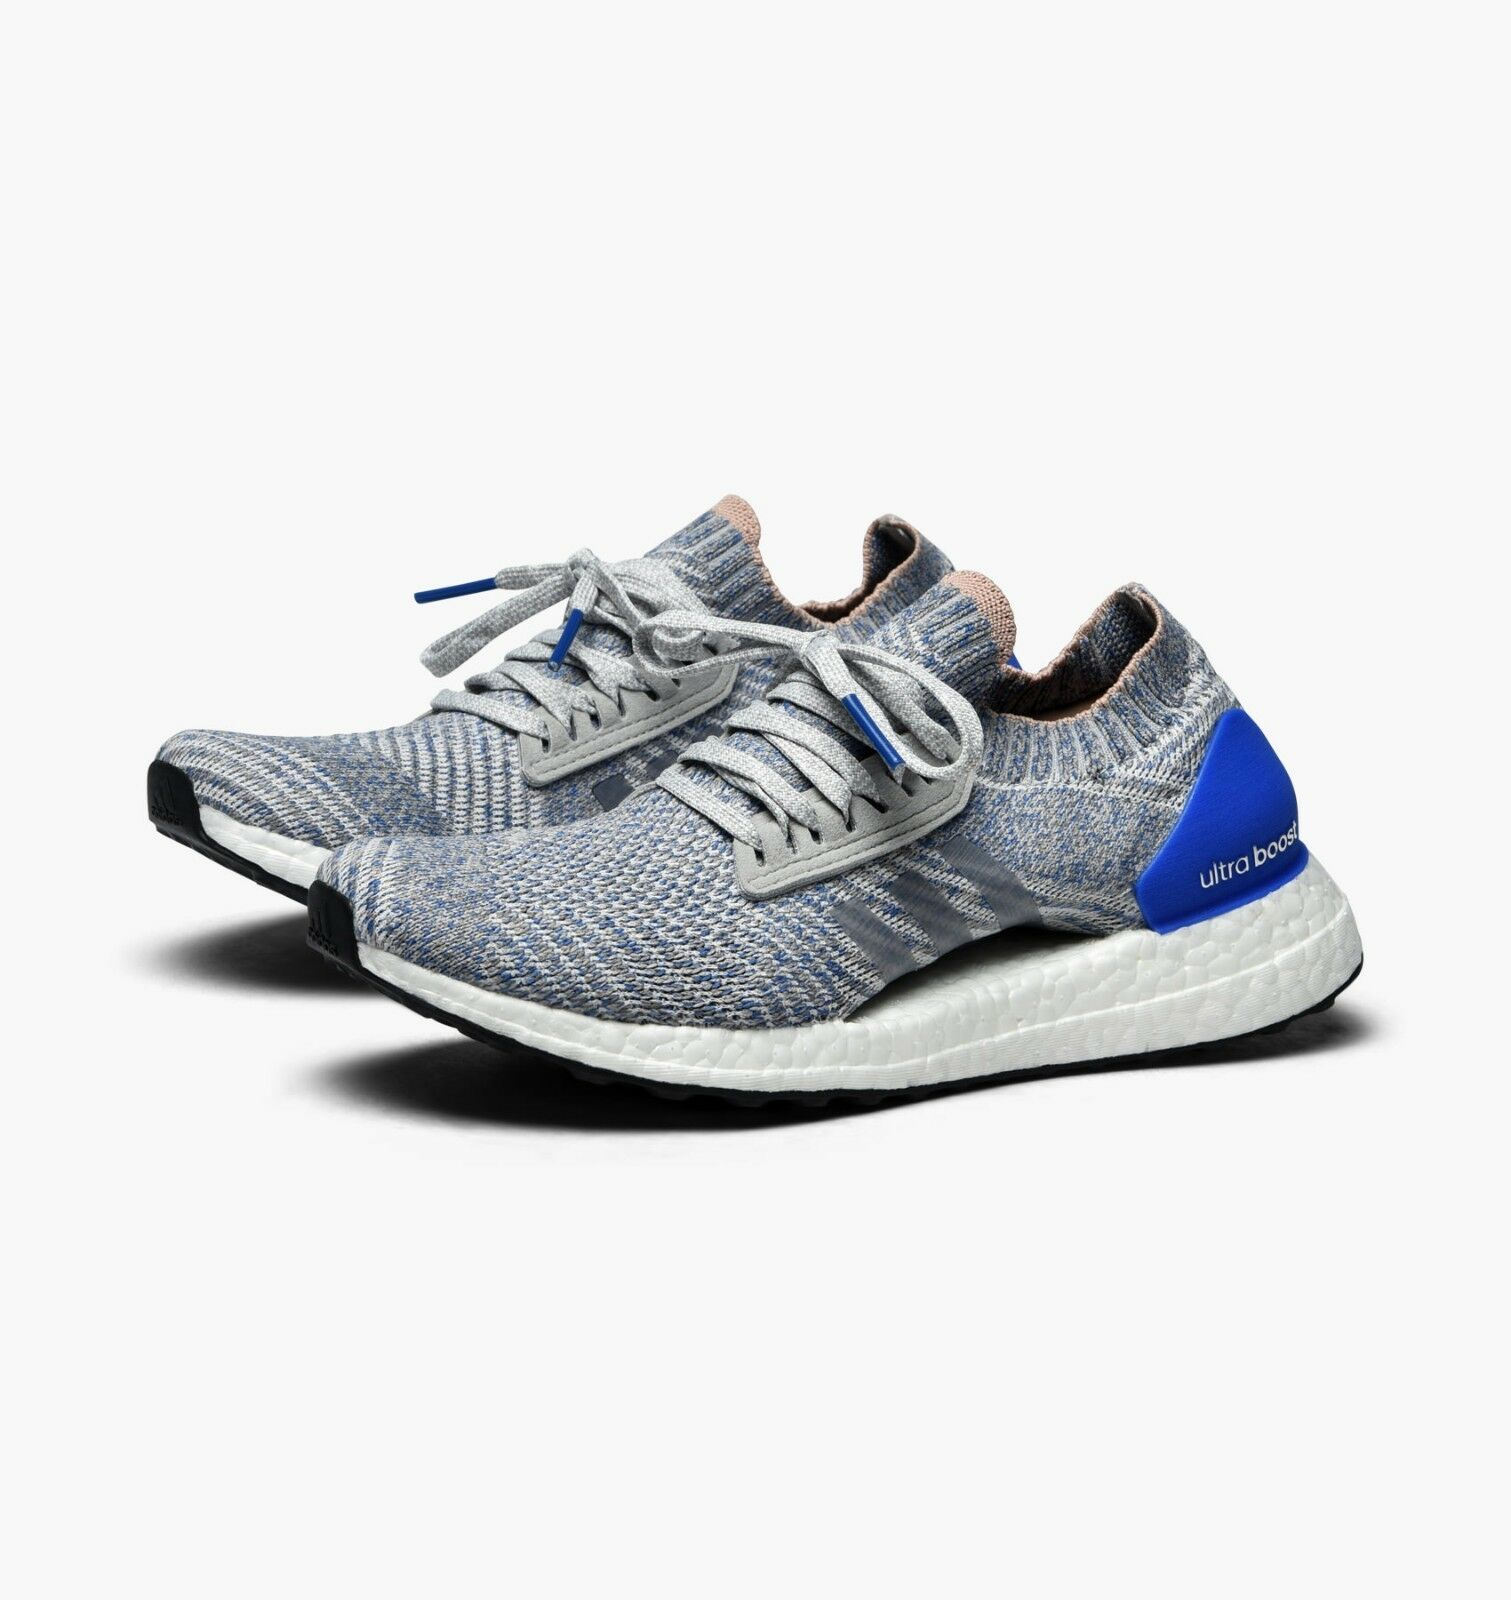 Adidas ultraboost X chaussures de course-gris-BB6155-UK5, 5 (US 7) - New no box